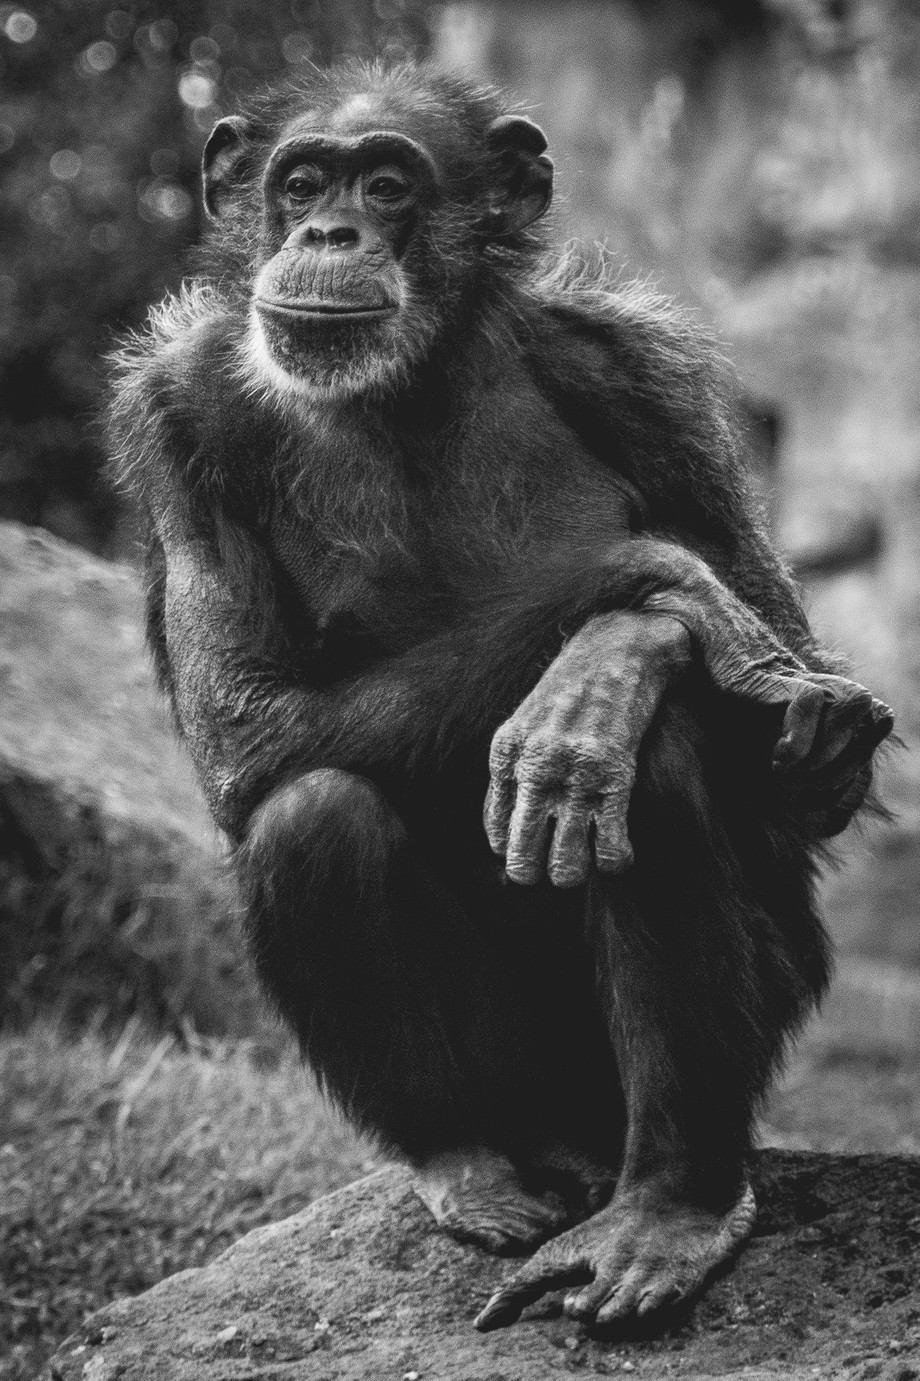 Chimp-Mood by Markus_D - Monkeys And Apes Photo Contest